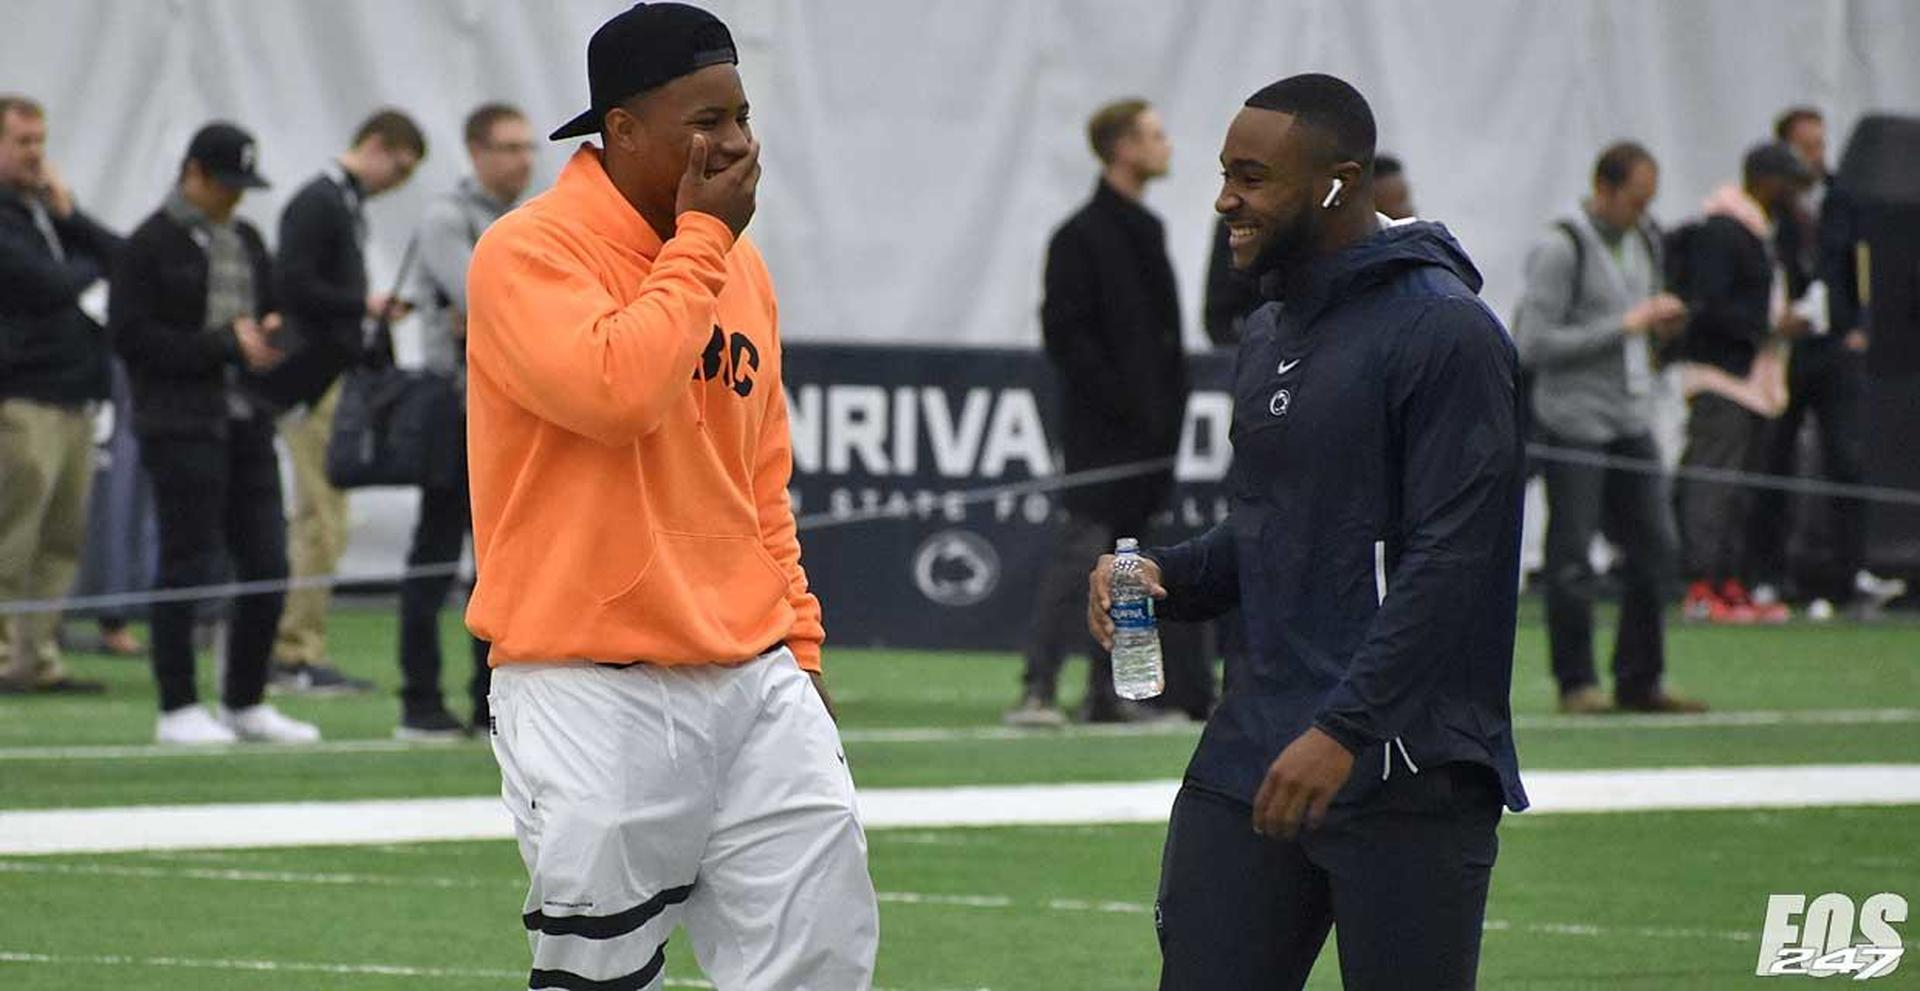 Saquon crashed PSU Pro Day - and an old roommate's apartment - CBSSports.com